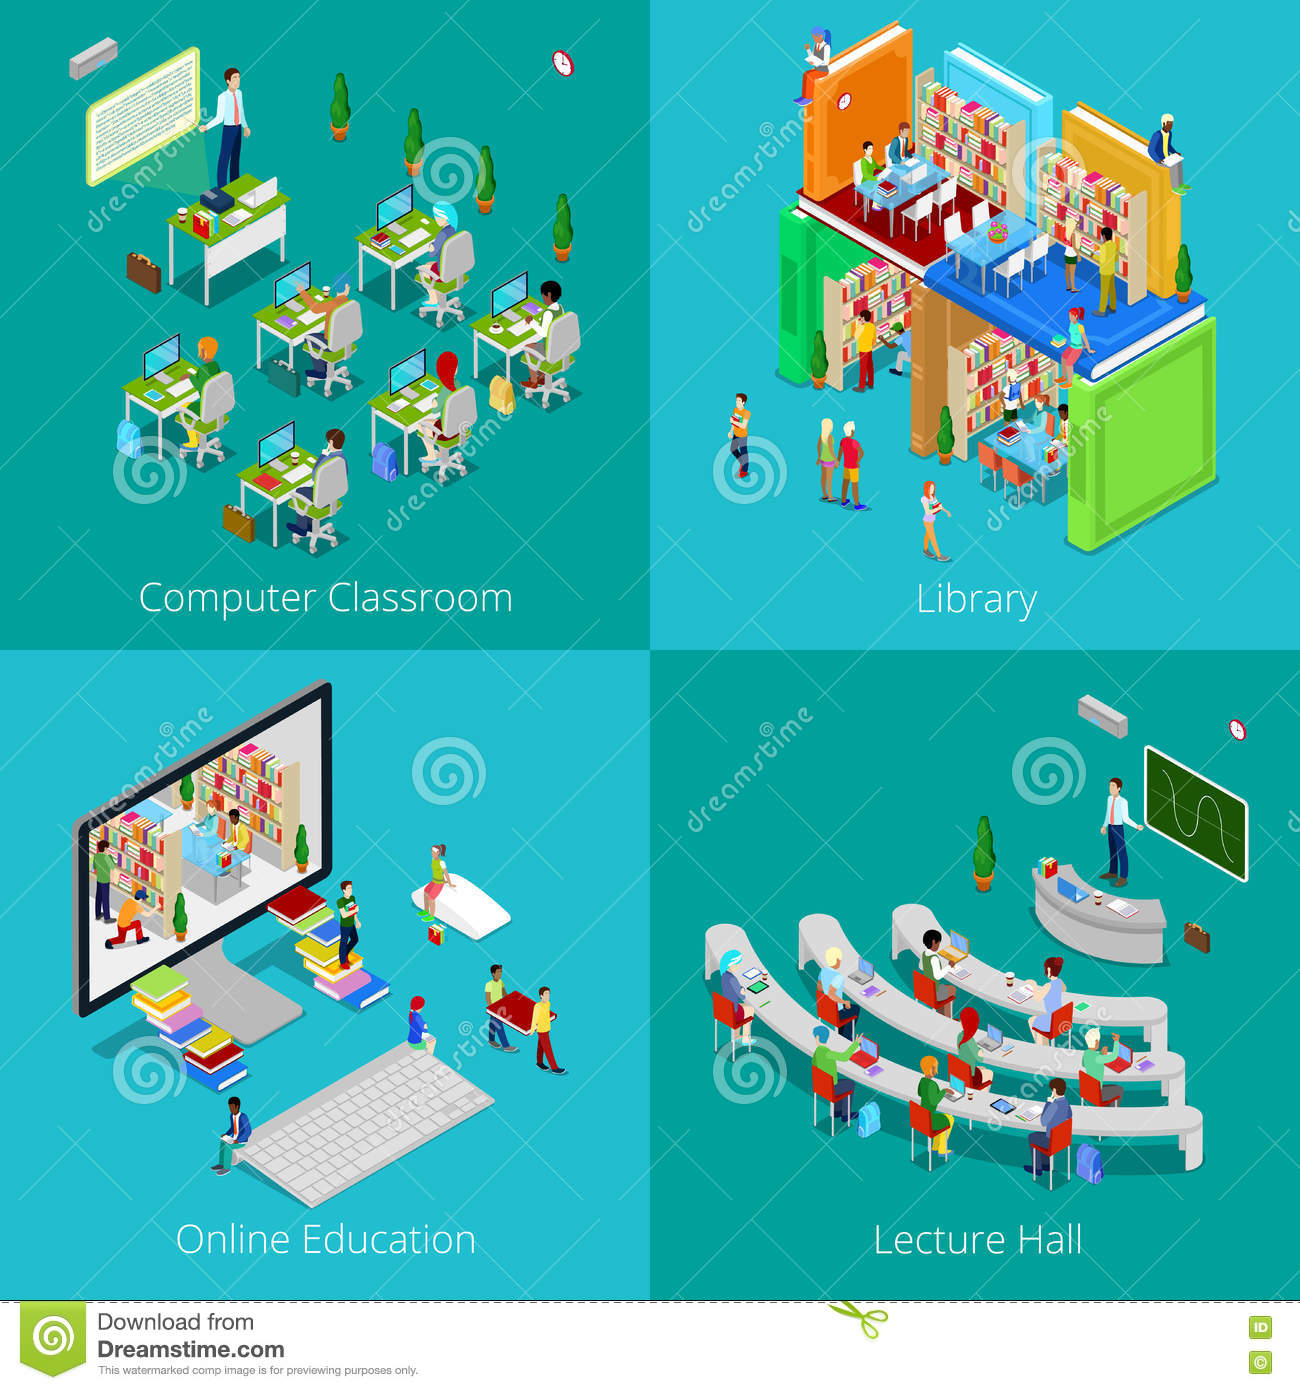 https://thumbs.dreamstime.com/z/isometric-educational-concept-university-computer-classroom-online-education-library-college-lecture-hall-students-vector-d-78504553.jpg